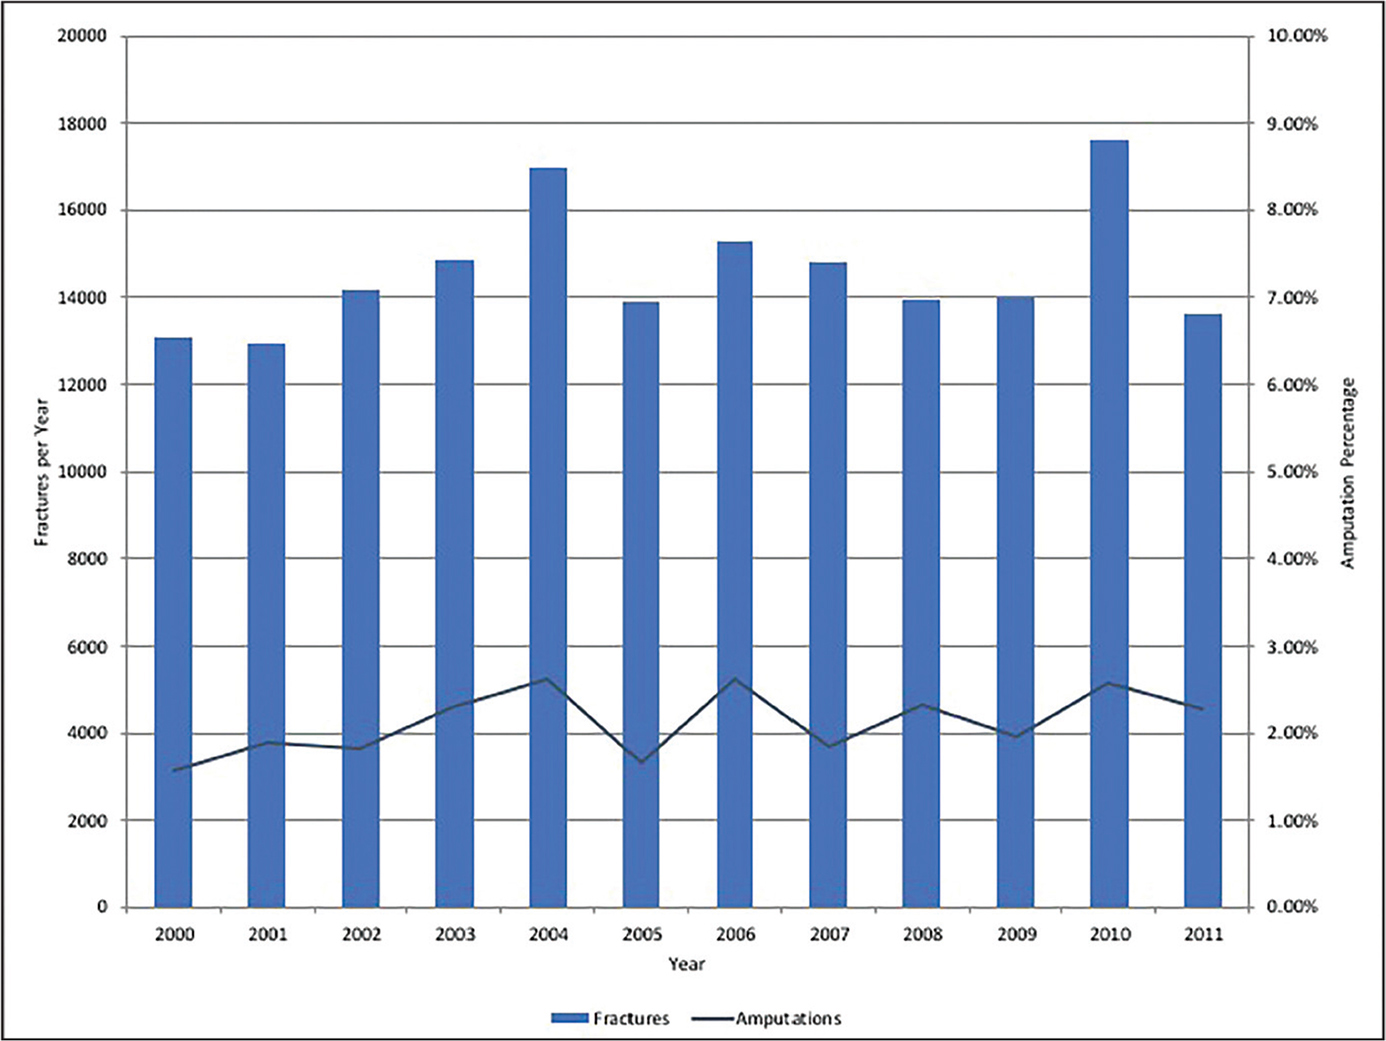 Bar graph showing the number of open tibia fractures per year in the United States along with the associated amputation rates.